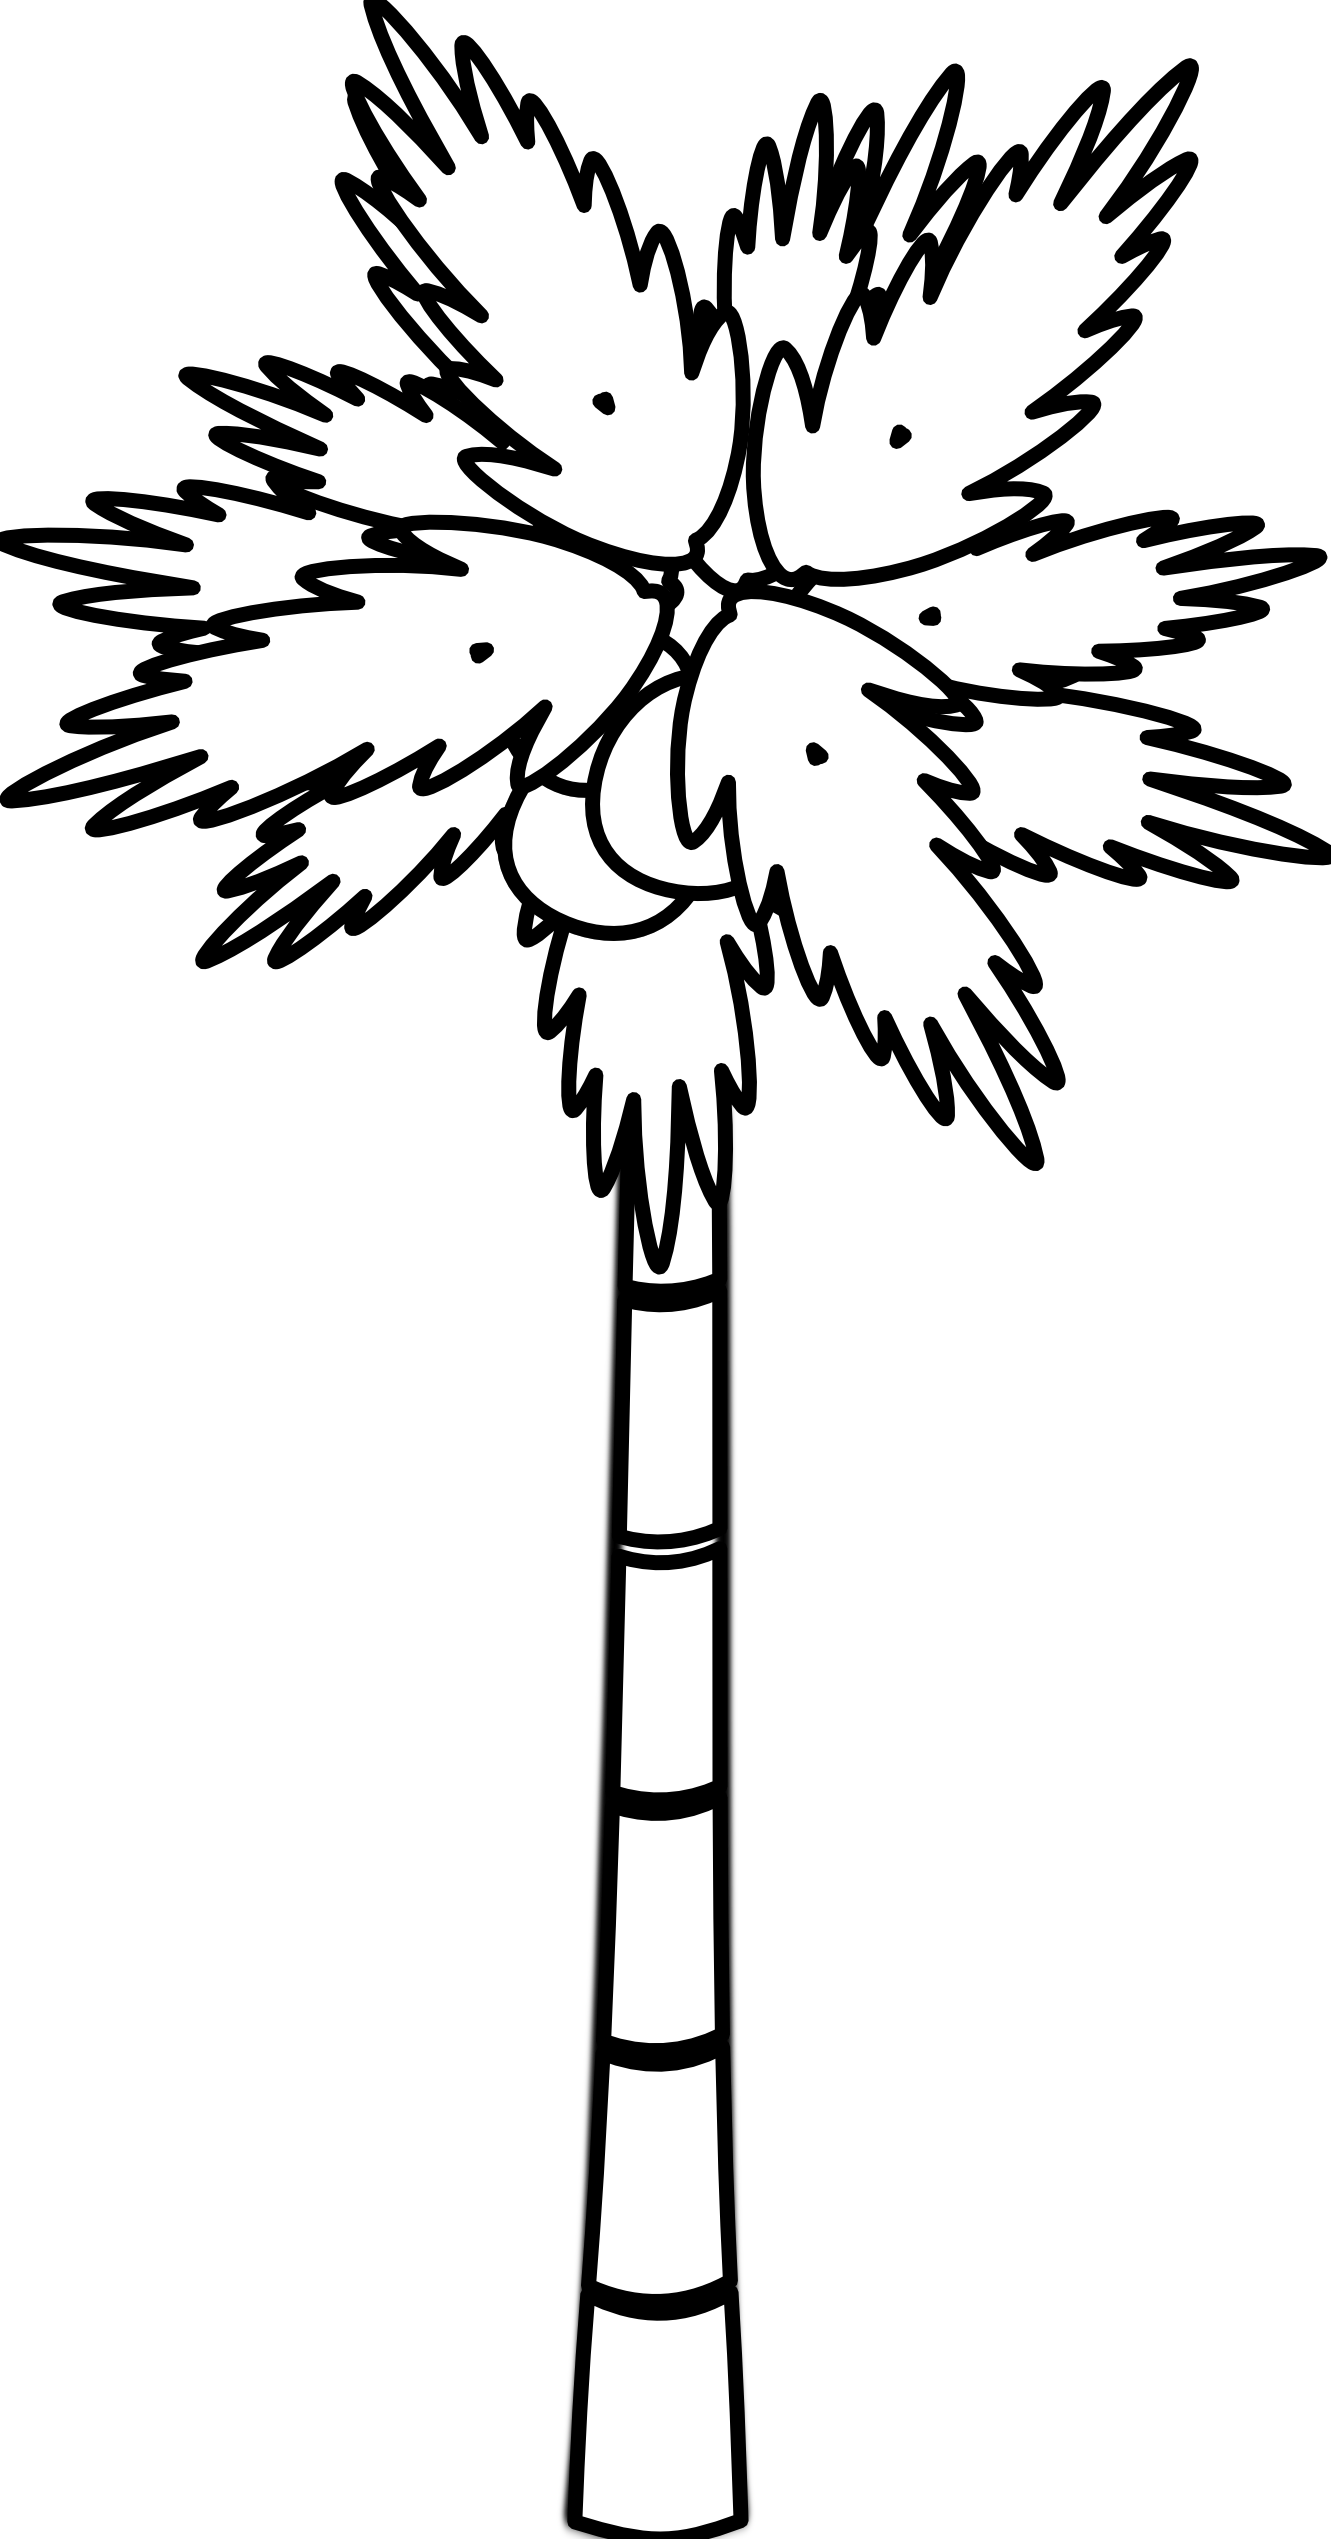 Hawaiian clipart coconut tree. Palm clip art black